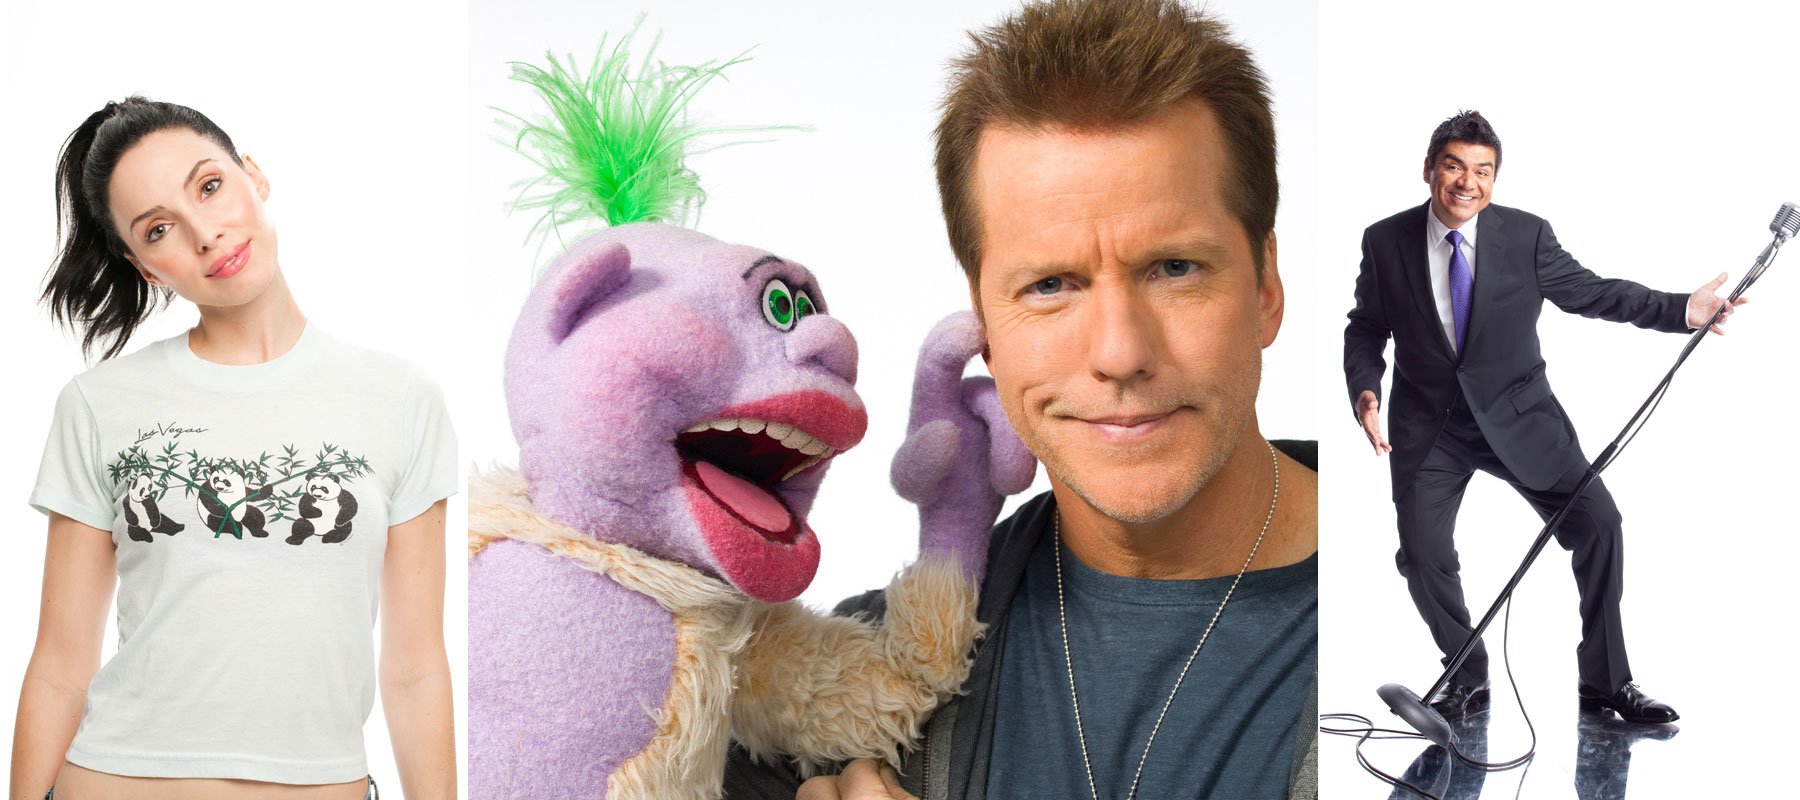 From left: Whitney Cummings, Jeff Dunham with Peanut and George Lopez